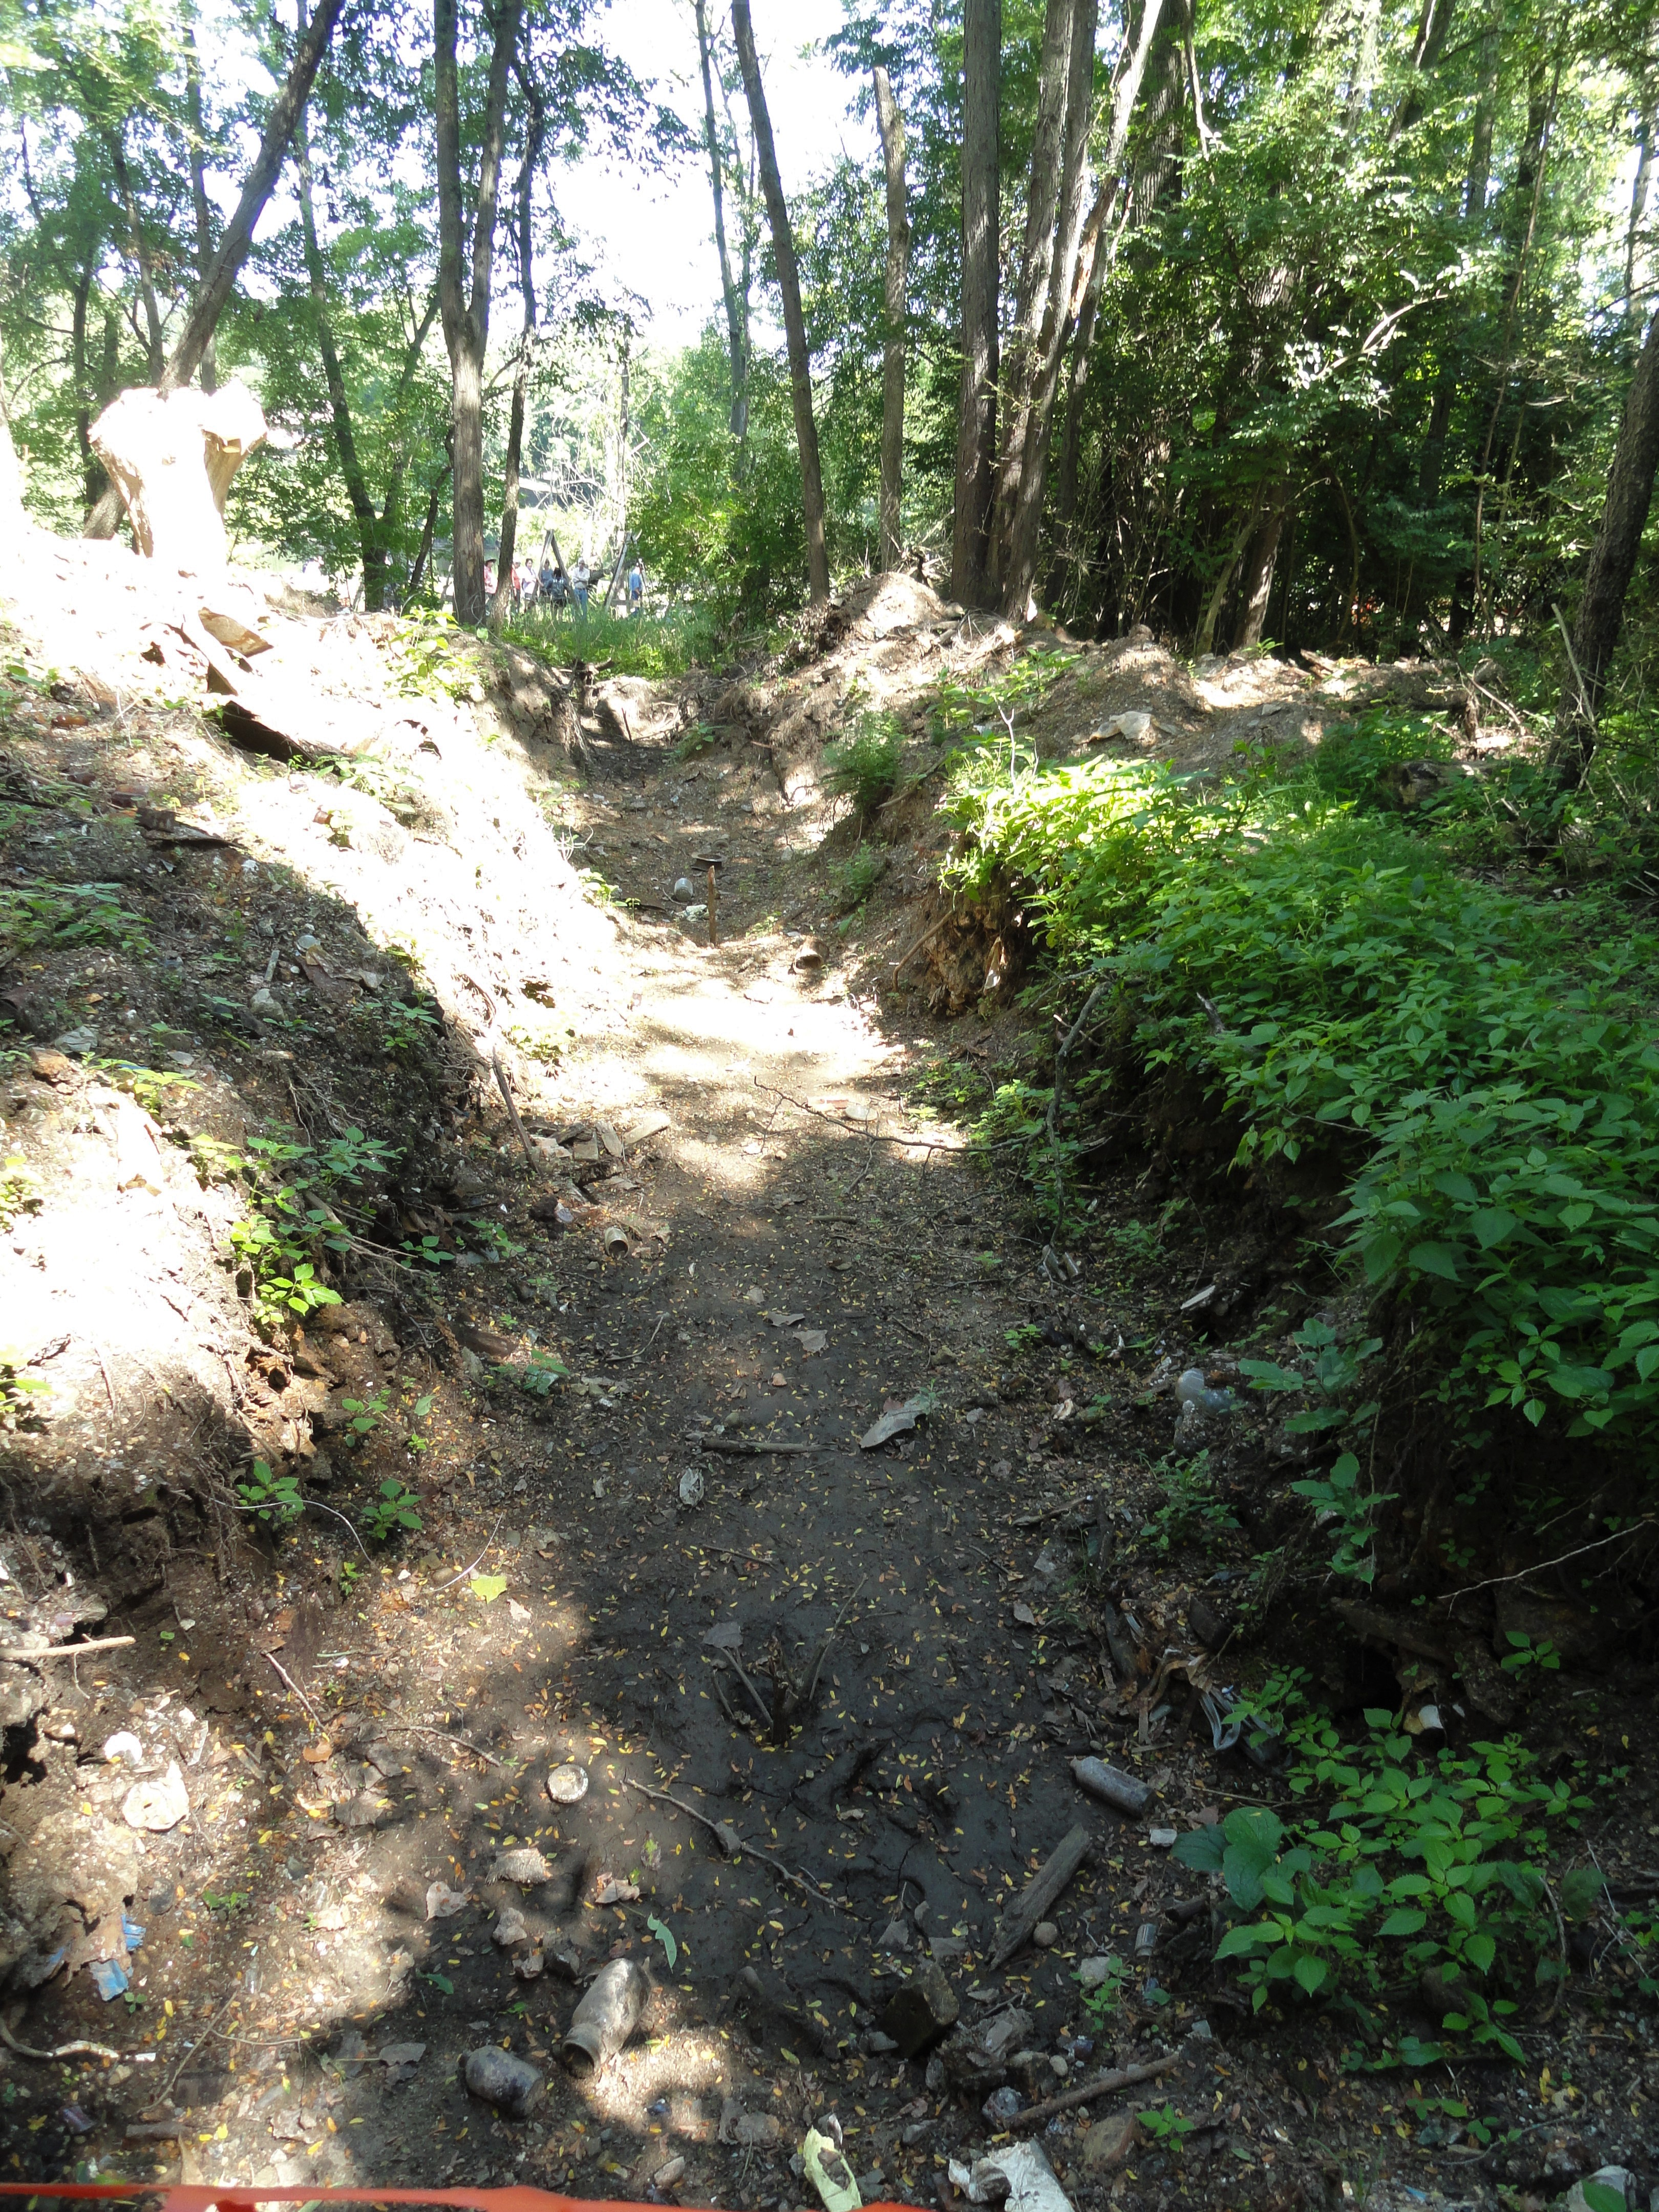 A trench dug in a 20th century landfill will make it easier for future WMU archeology students to search for artifacts.